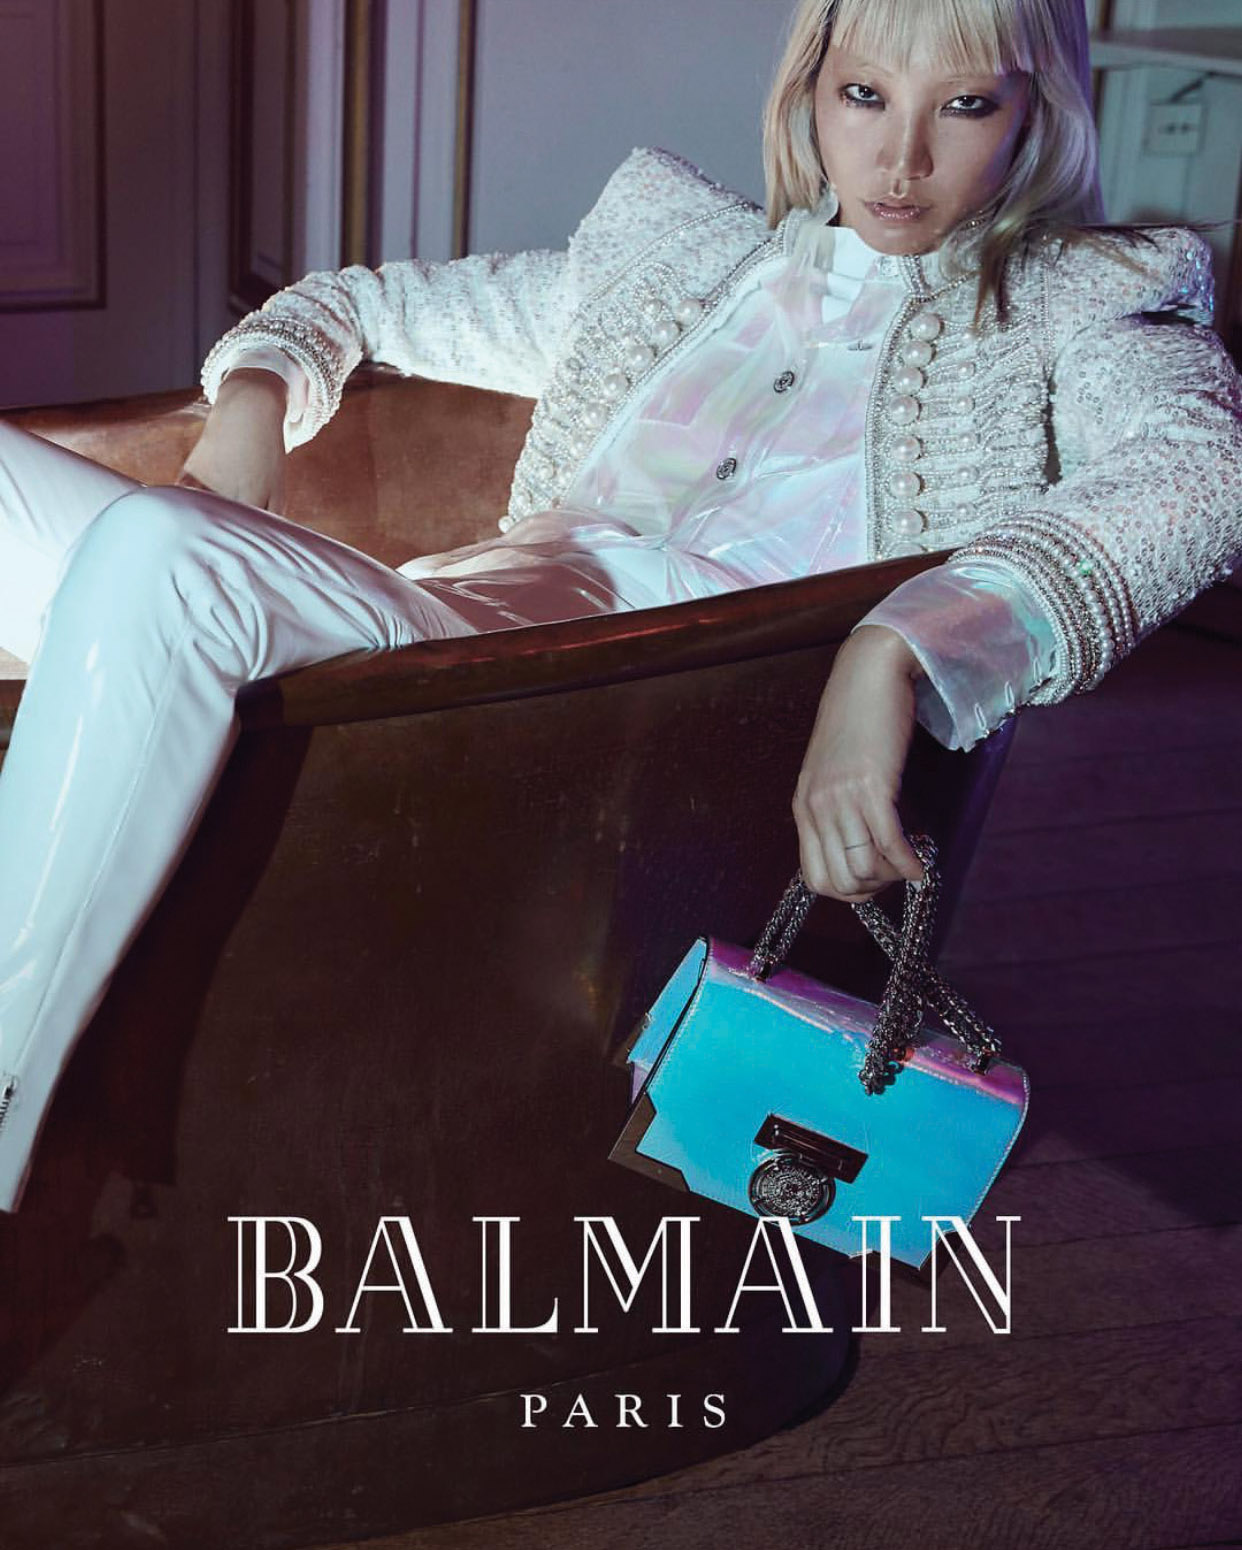 Image via  Balmain  by  An Le